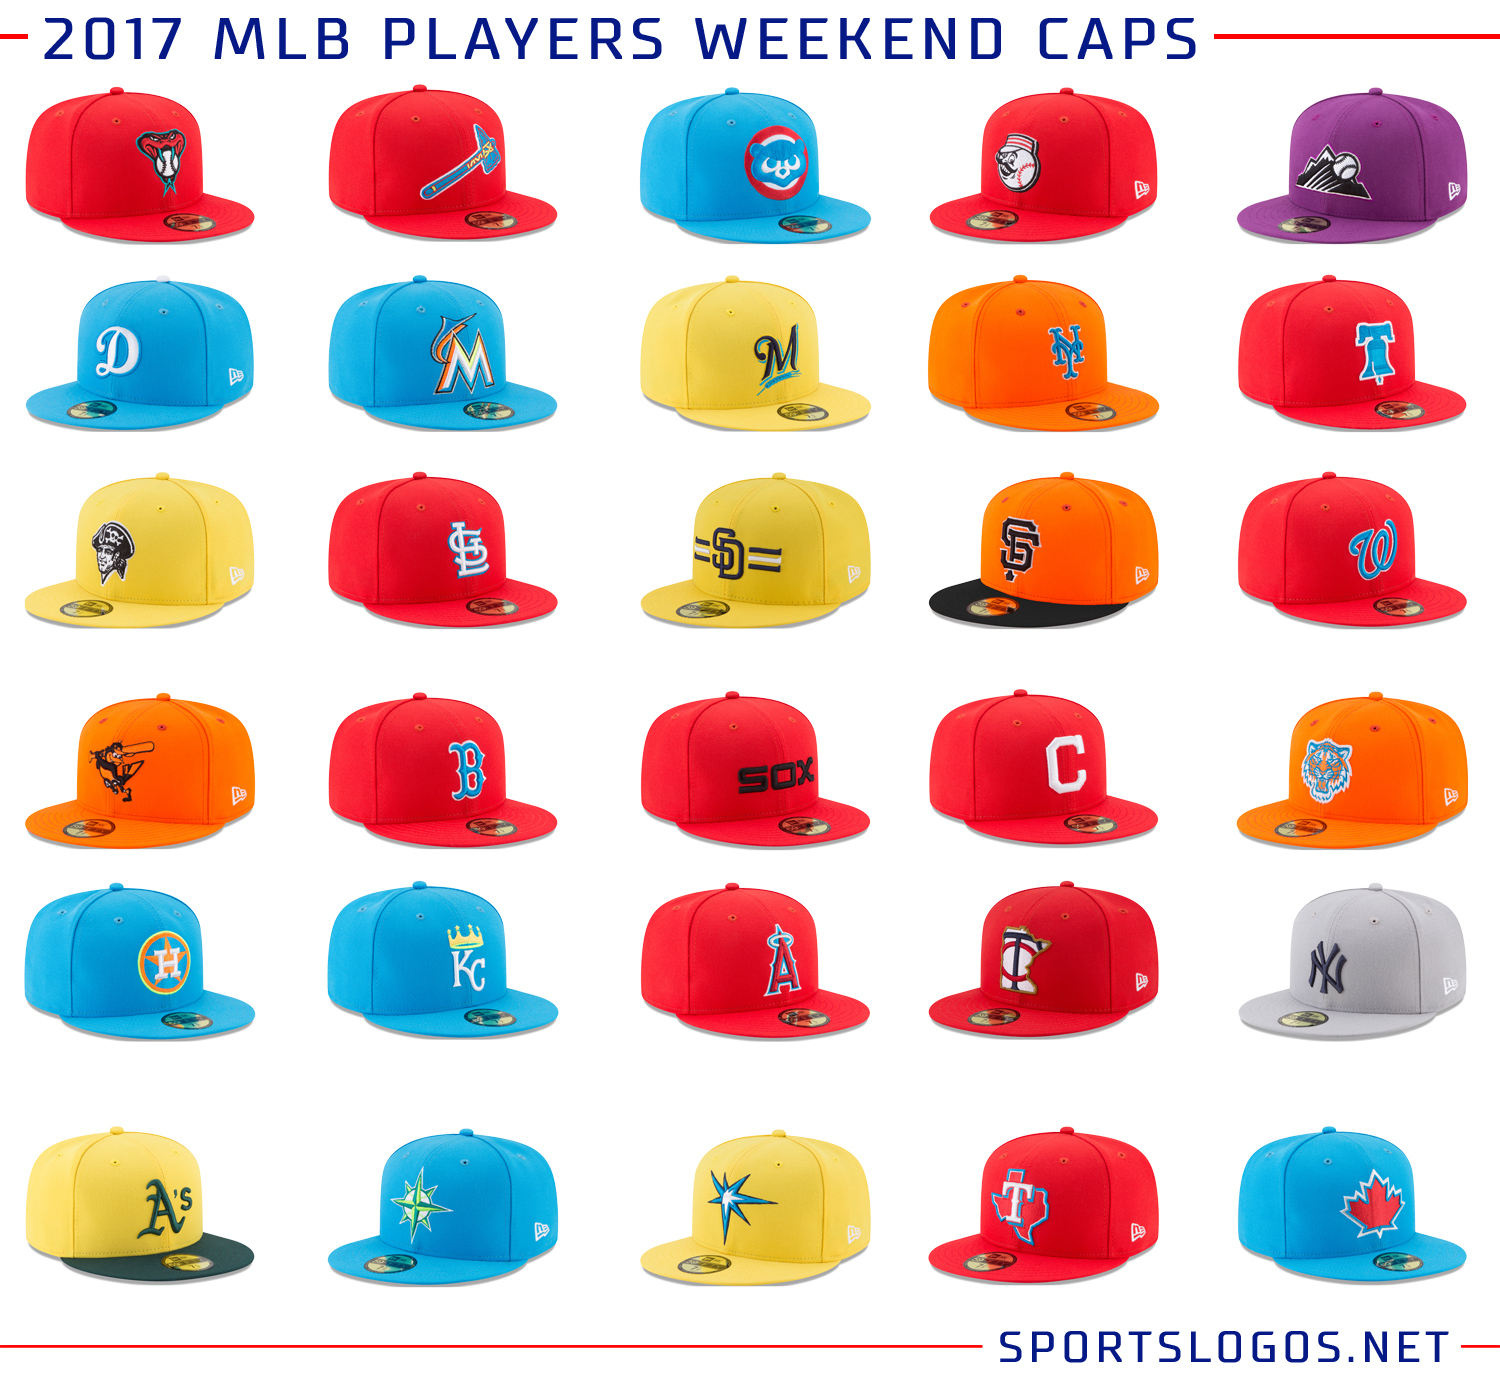 fa4346bdb Closeup of the Brewers Players Weekend cap shows lighter blue highlights